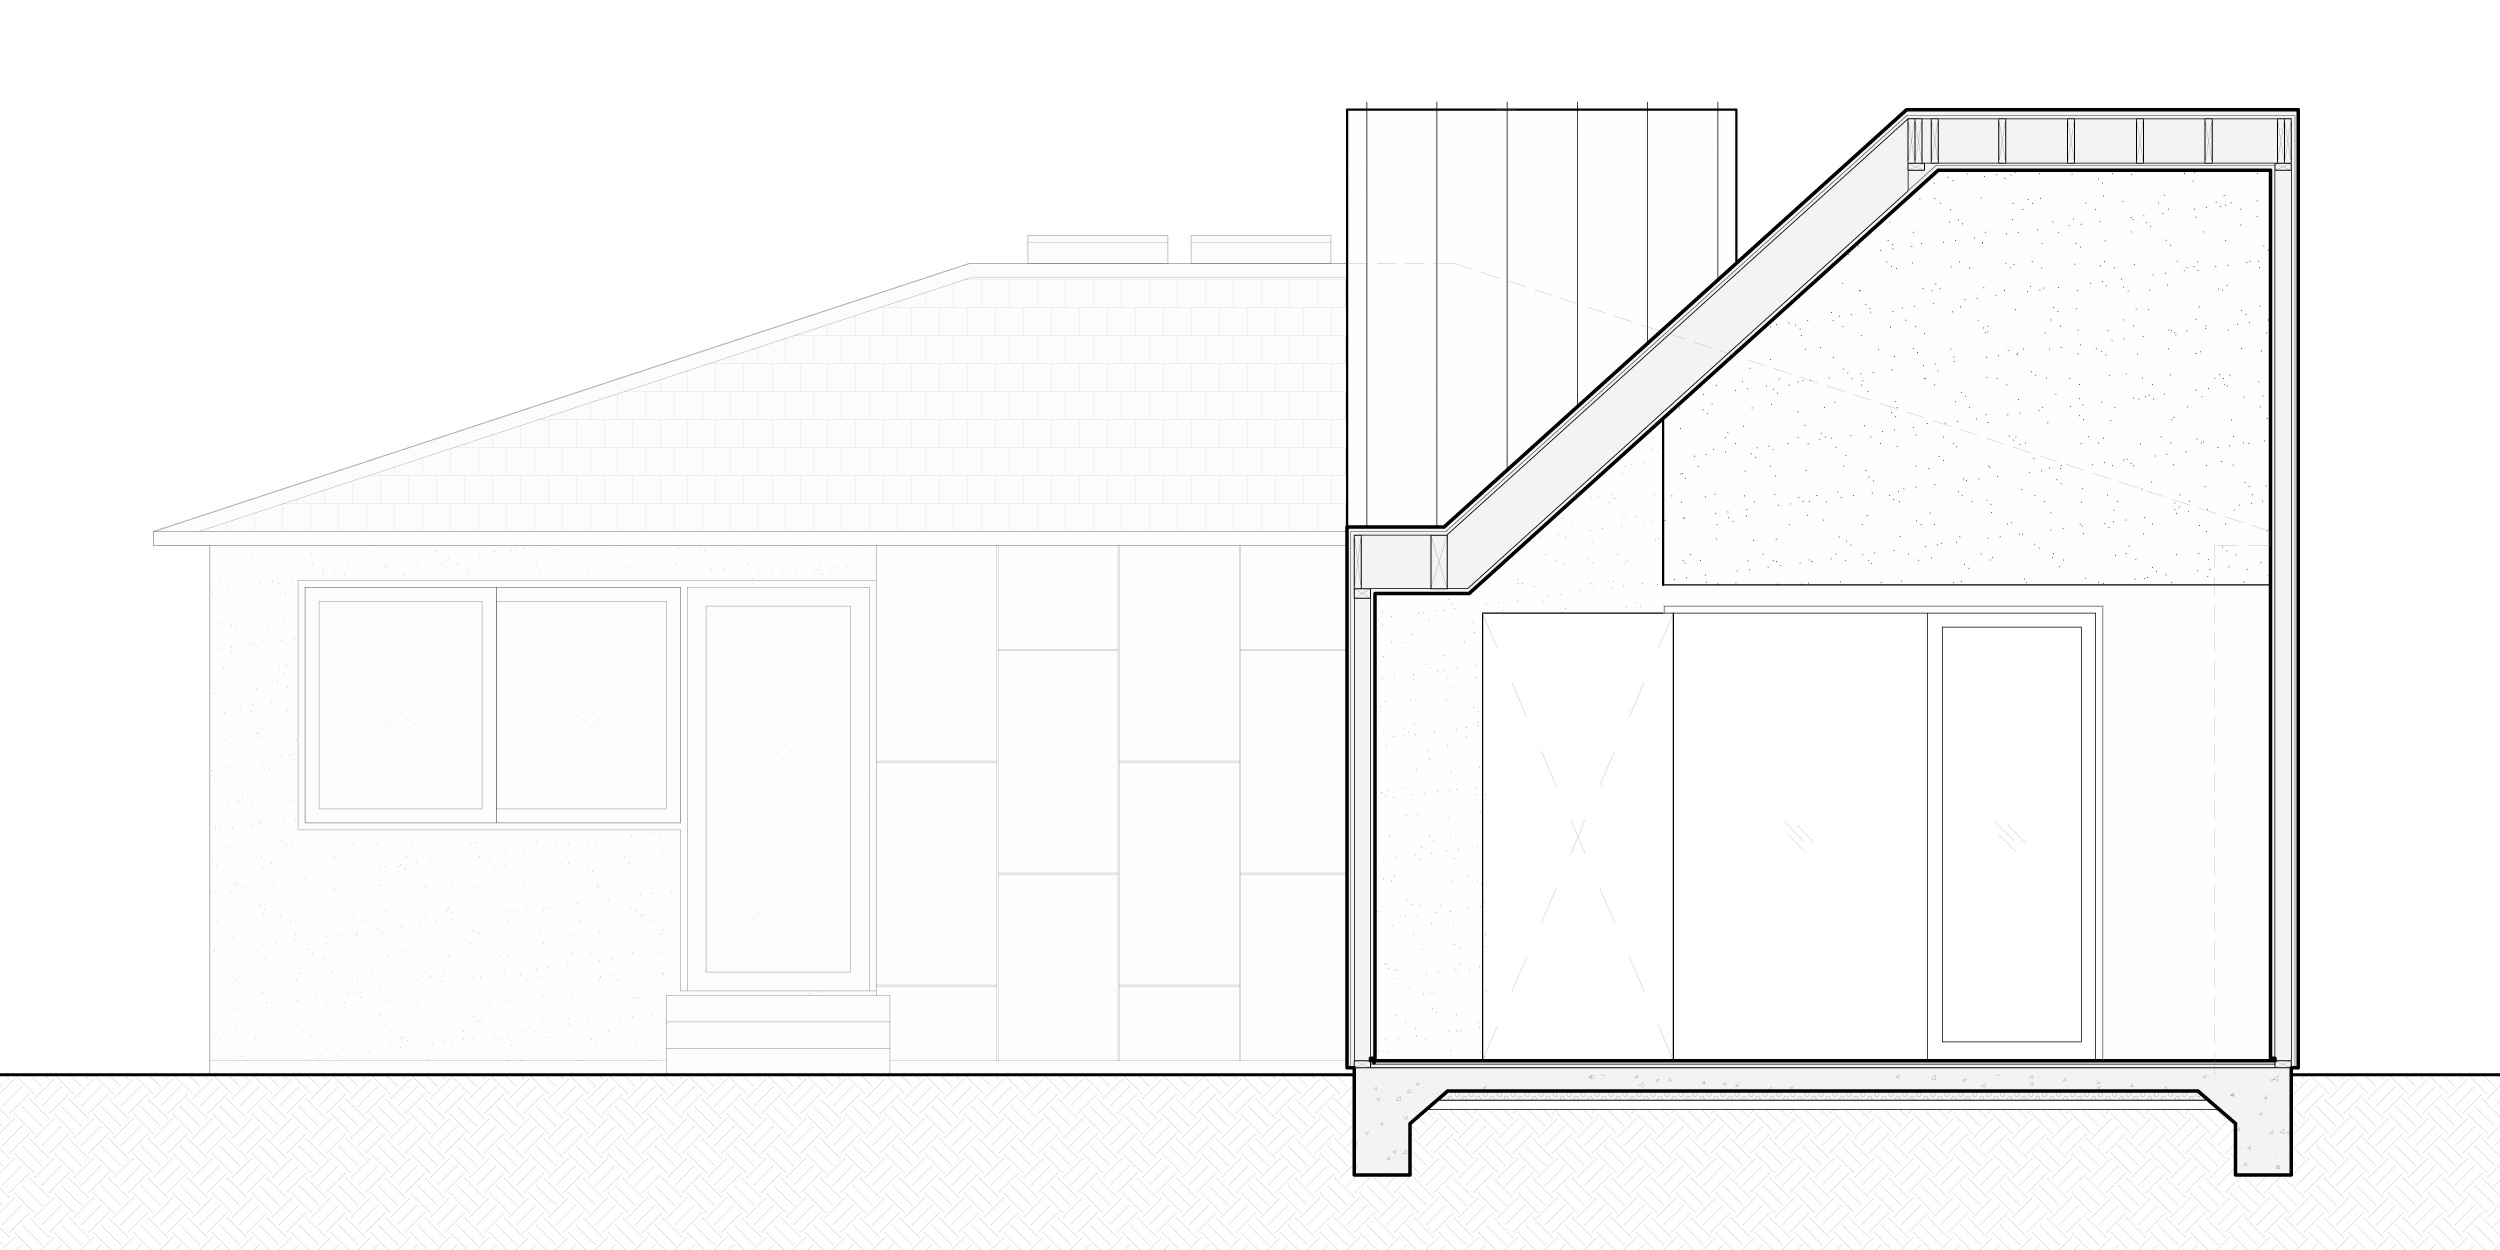 Section through addition looking towards the existing house